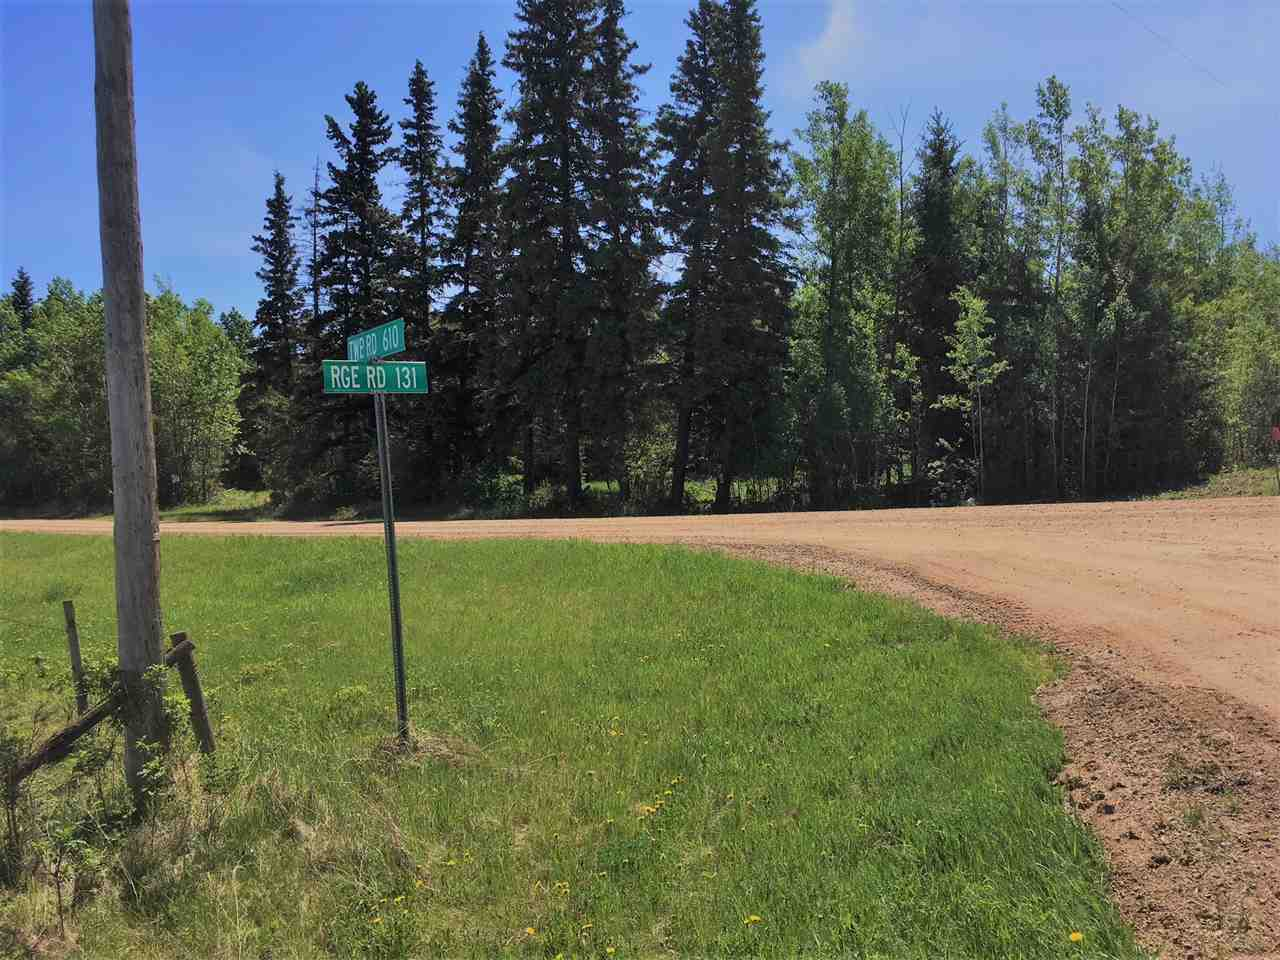 Enjoy the peace, quiet & tranquility of this corner 3 acre parcel nestled amongst a mix of poplar and spruce trees. This is an ideal property for a new home site or your recreational getaway. Power, water and a septic system are on site and a telephone line is available at property line. Minutes to Whitefish, Goodfish, Garner, Floating Stone & Bonnie Lakes which offer swimming, boating, fishing or hanging out at the beach. For the golfer, Vilna Golf Course offers a 9 hole course with grass greens. The possibilities are endless for this beautiful property. GST may be applicable.